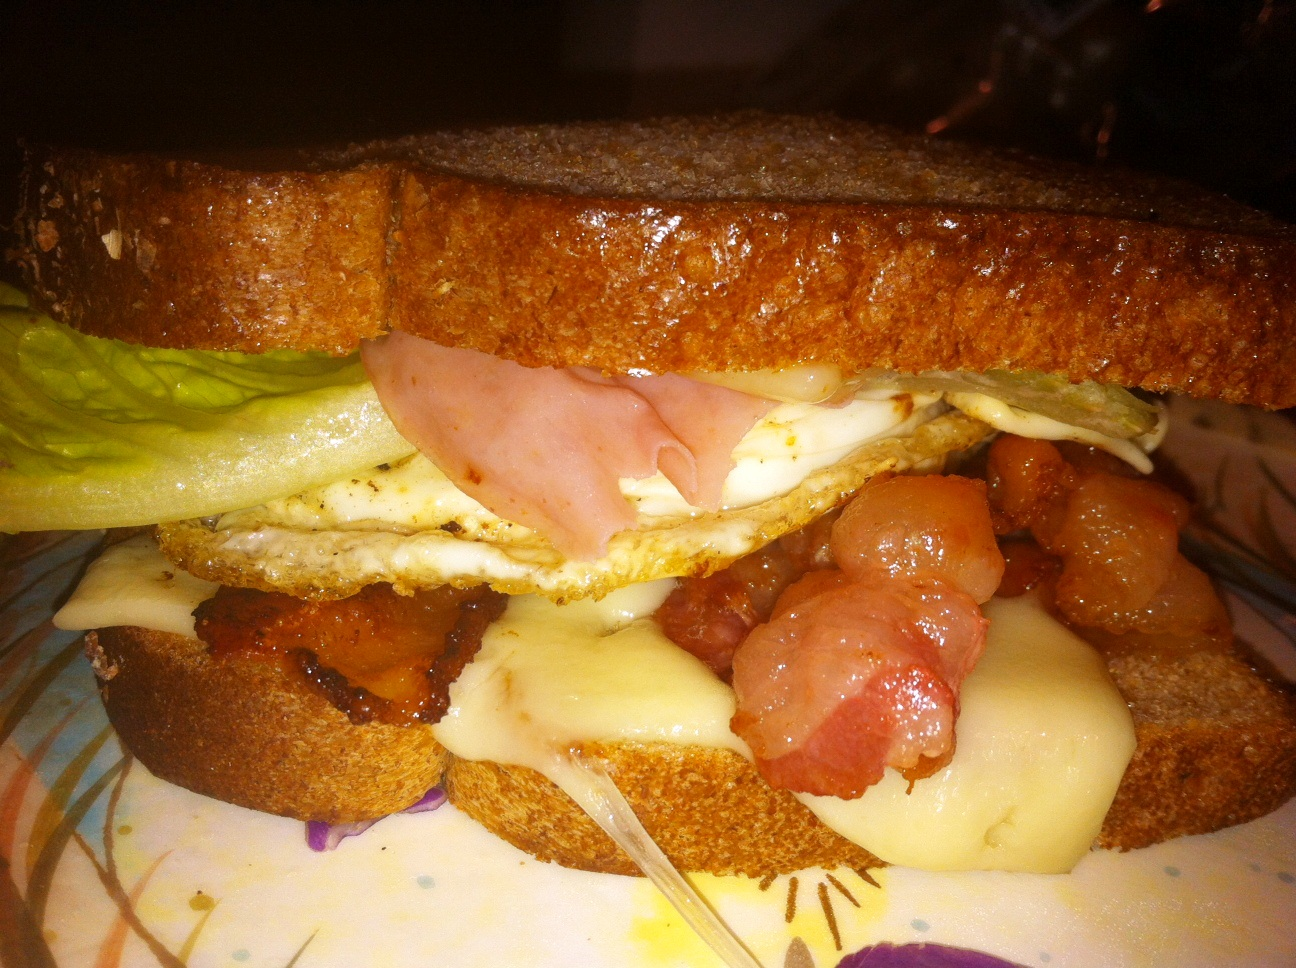 You will need 2-3 strips of bacon, 2 slices Swiss cheese, 1 egg, Dijon ...